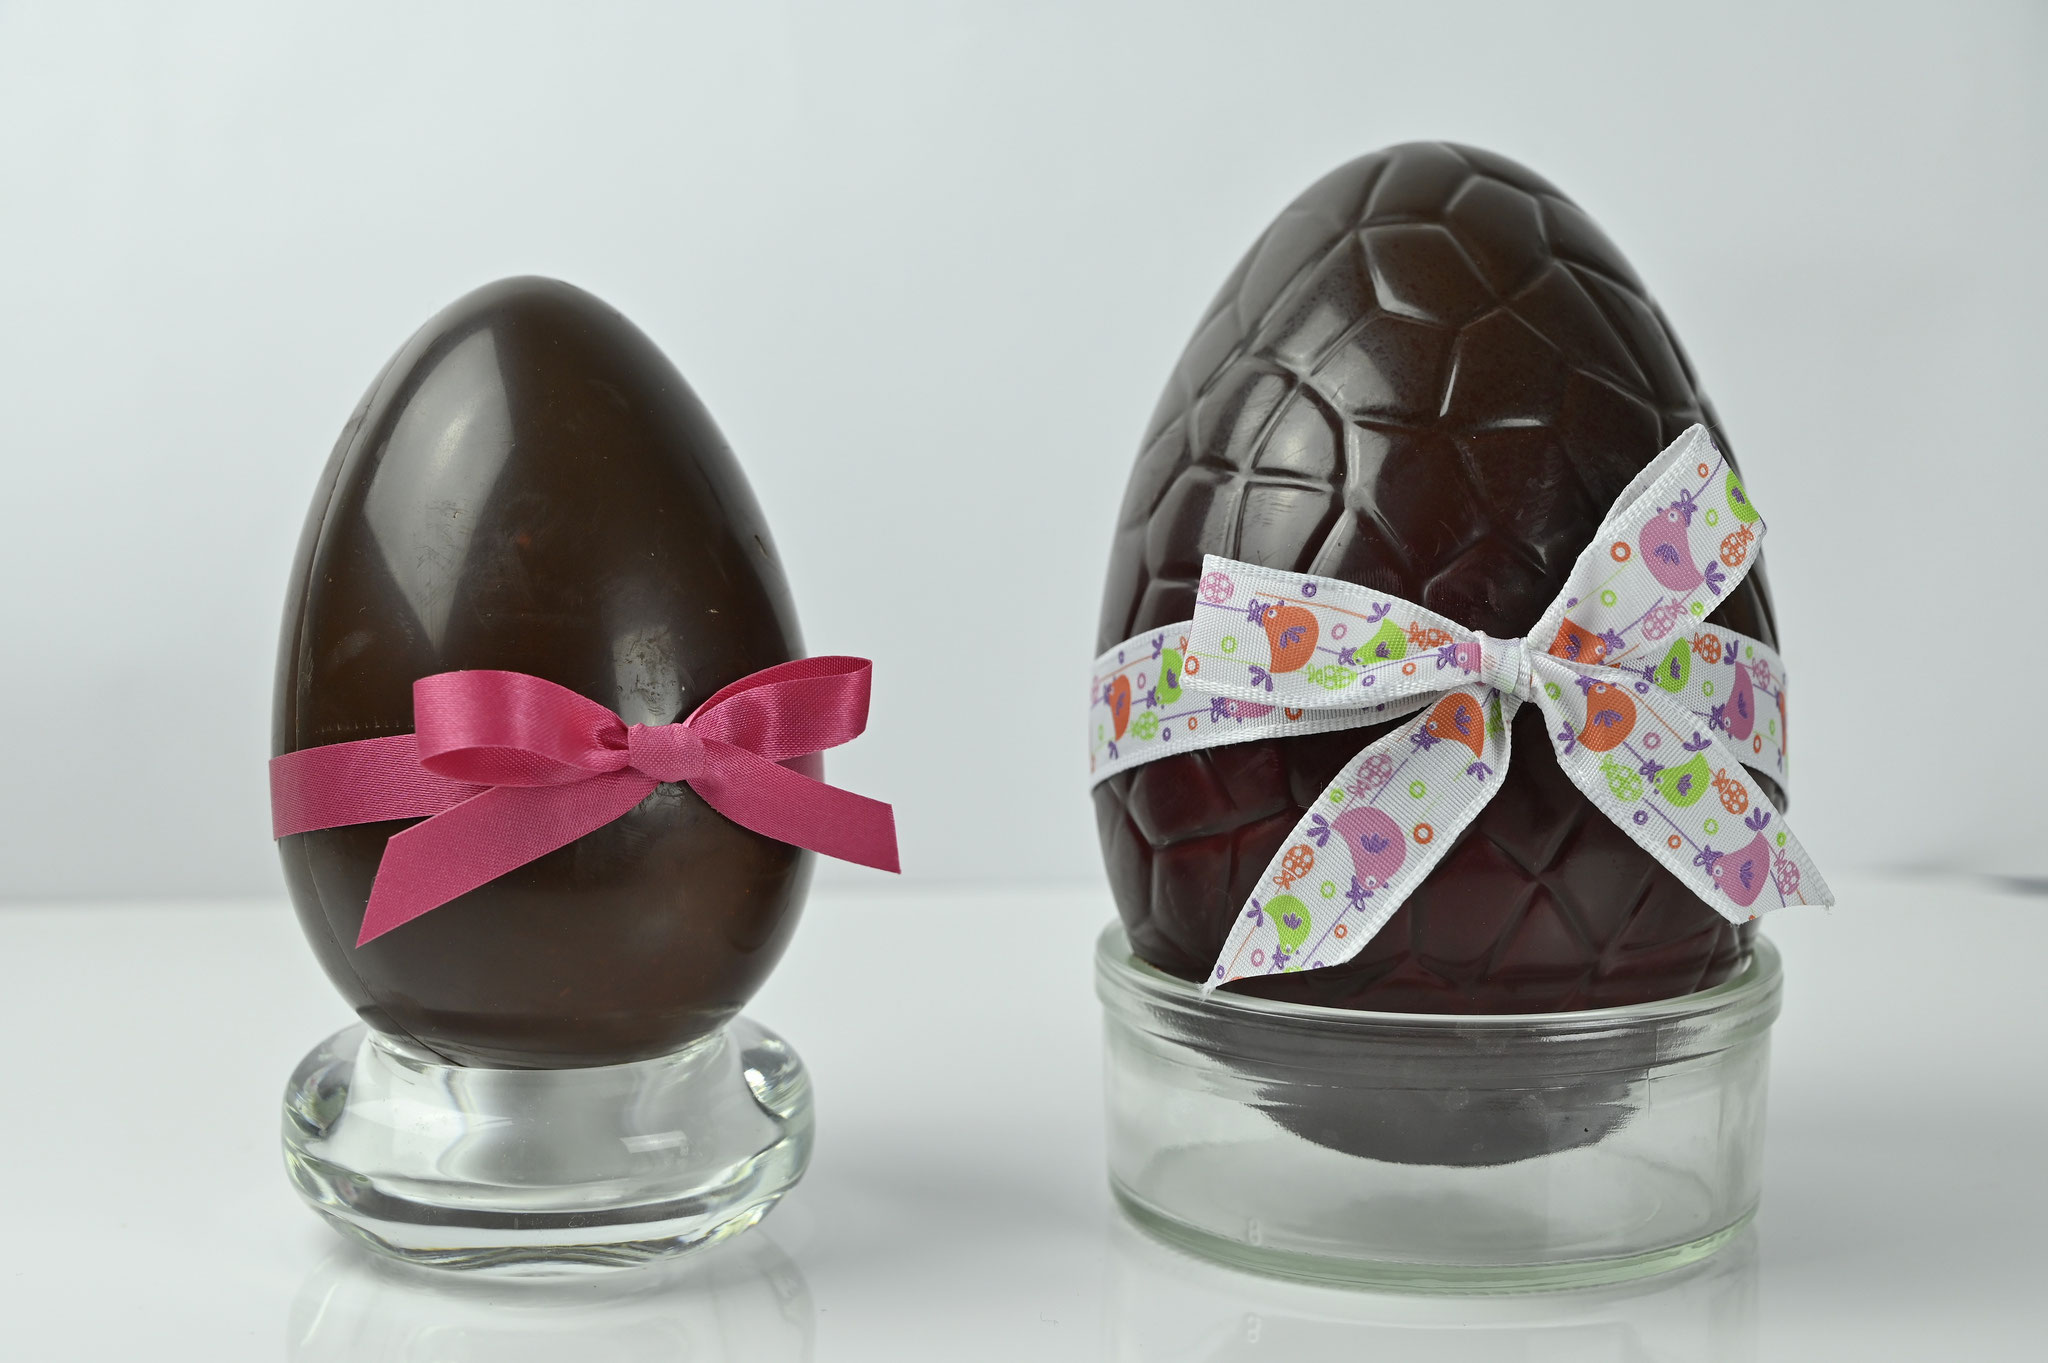 oeuf  T2-285g-18.00€   T1-200g-12.60€